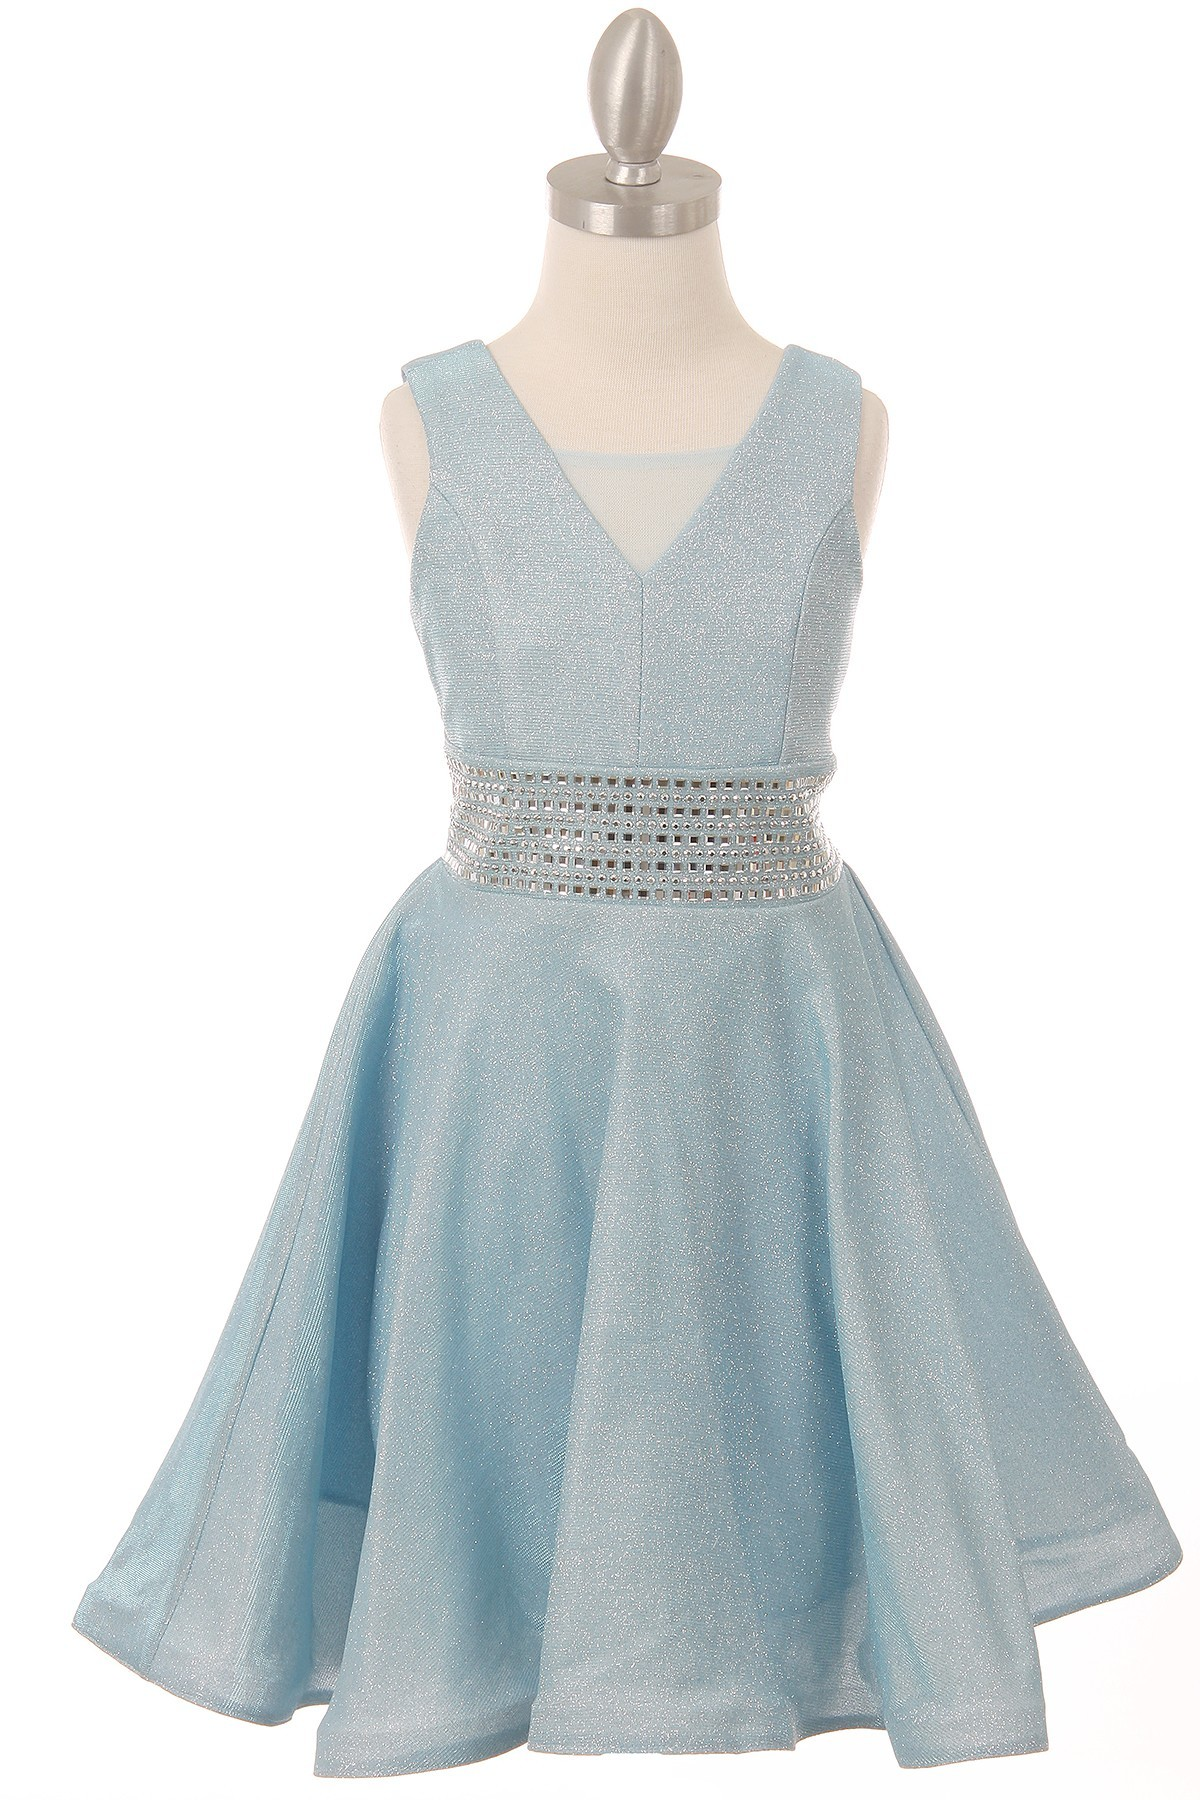 girls blue church dress